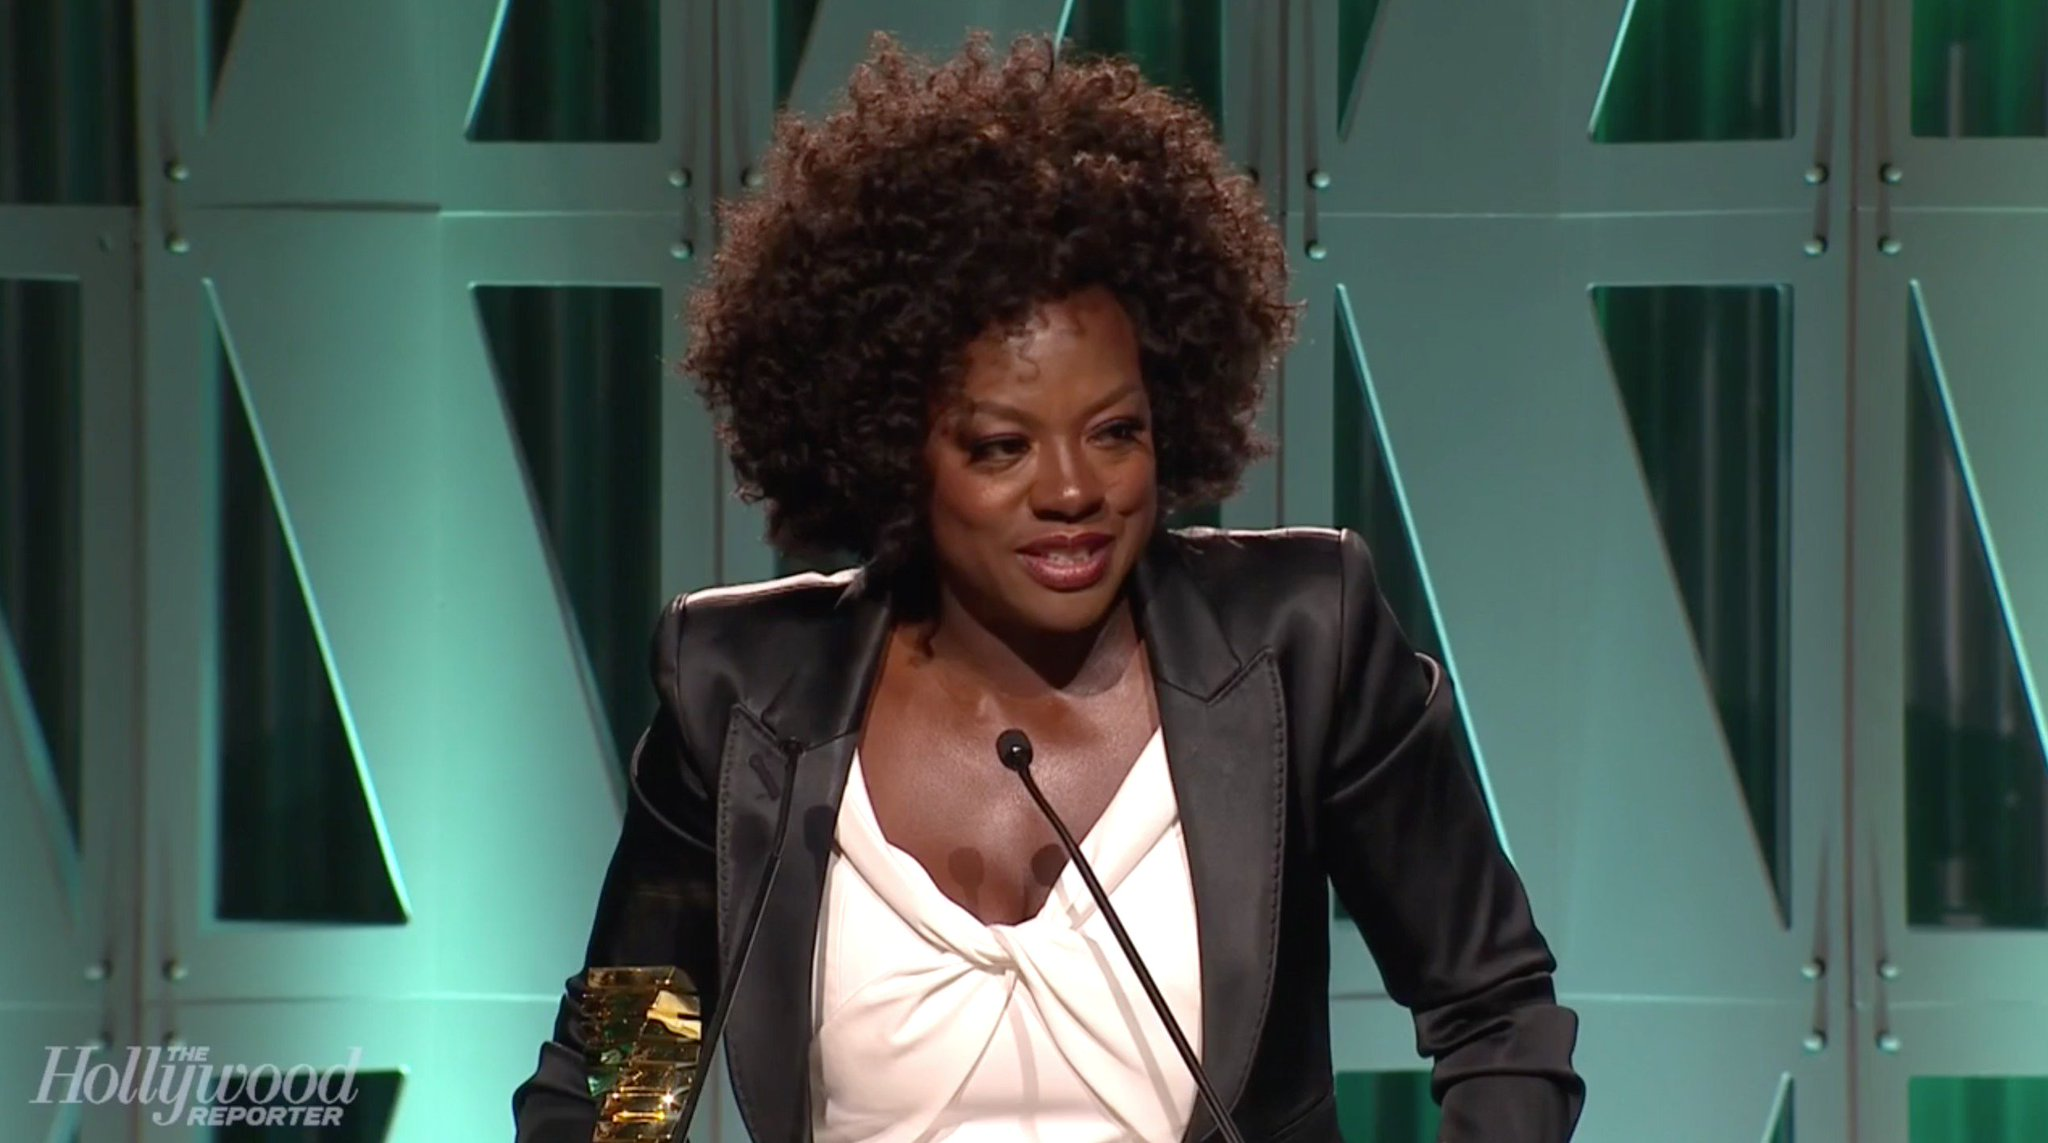 Watch @ViolaDavis' powerful #WomenInEntertainment speech: https://t.co/nJm3ds7cCk https://t.co/JQ6gMItrVa